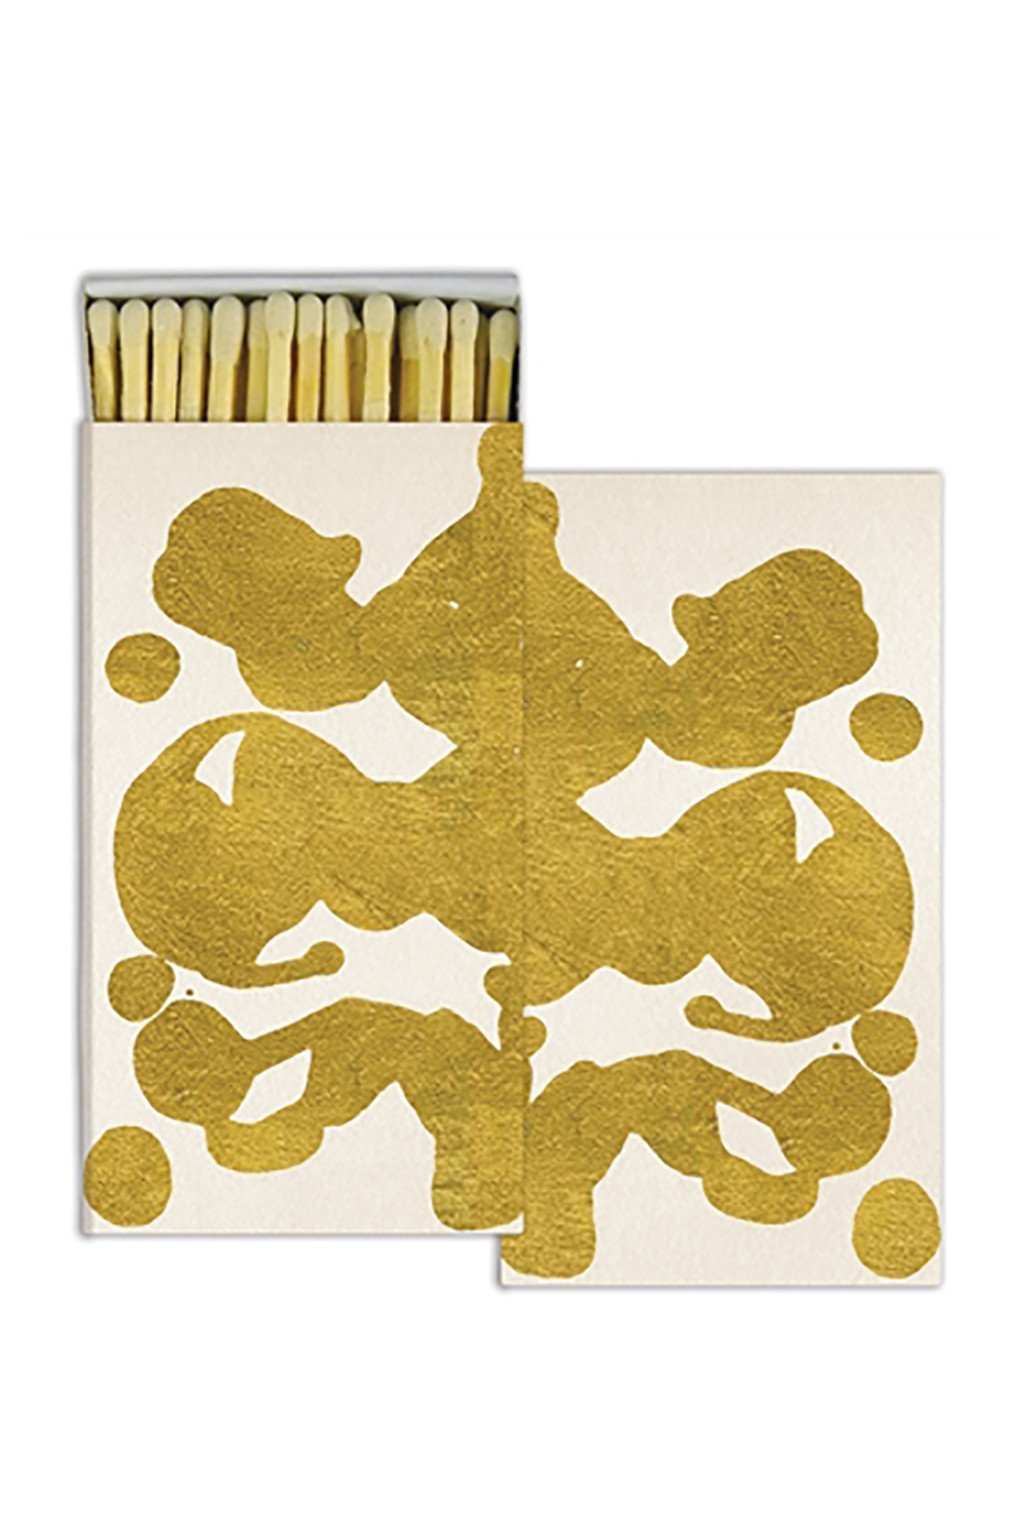 Gold Foil Rorschach Matches - Two Penny Blue